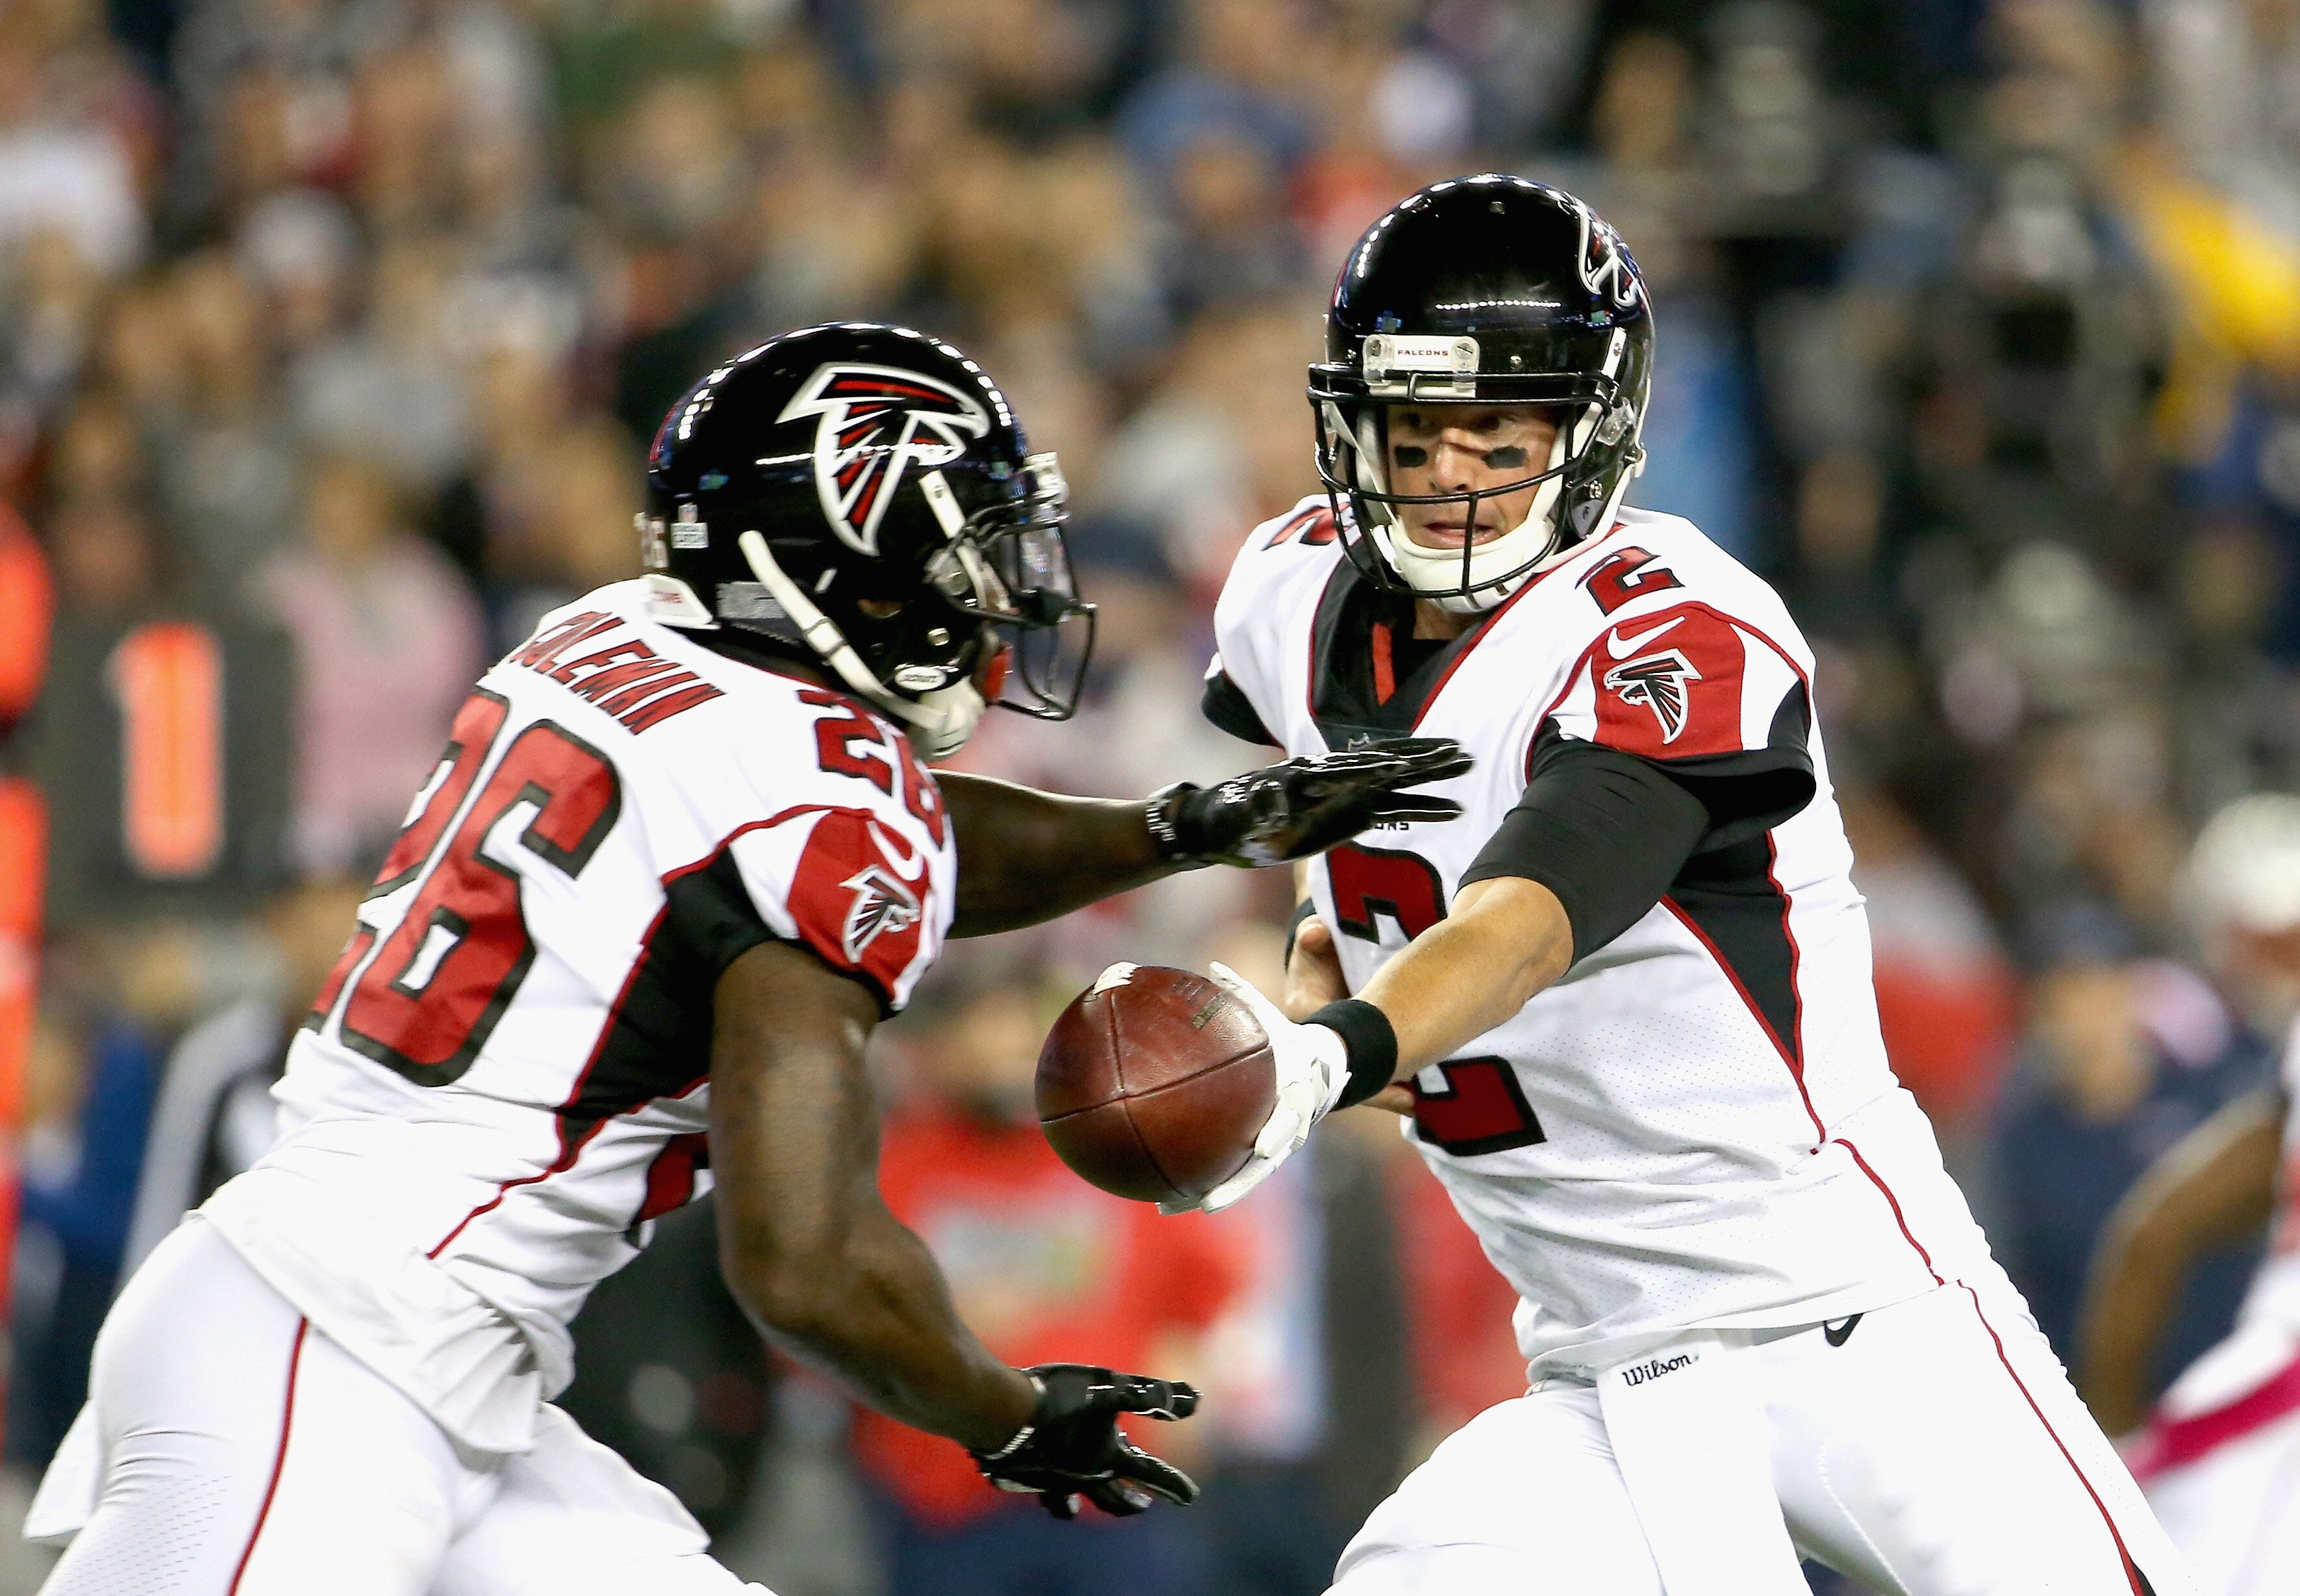 Atlanta Falcons 3 Falcons who saw their stock drop in Week 7